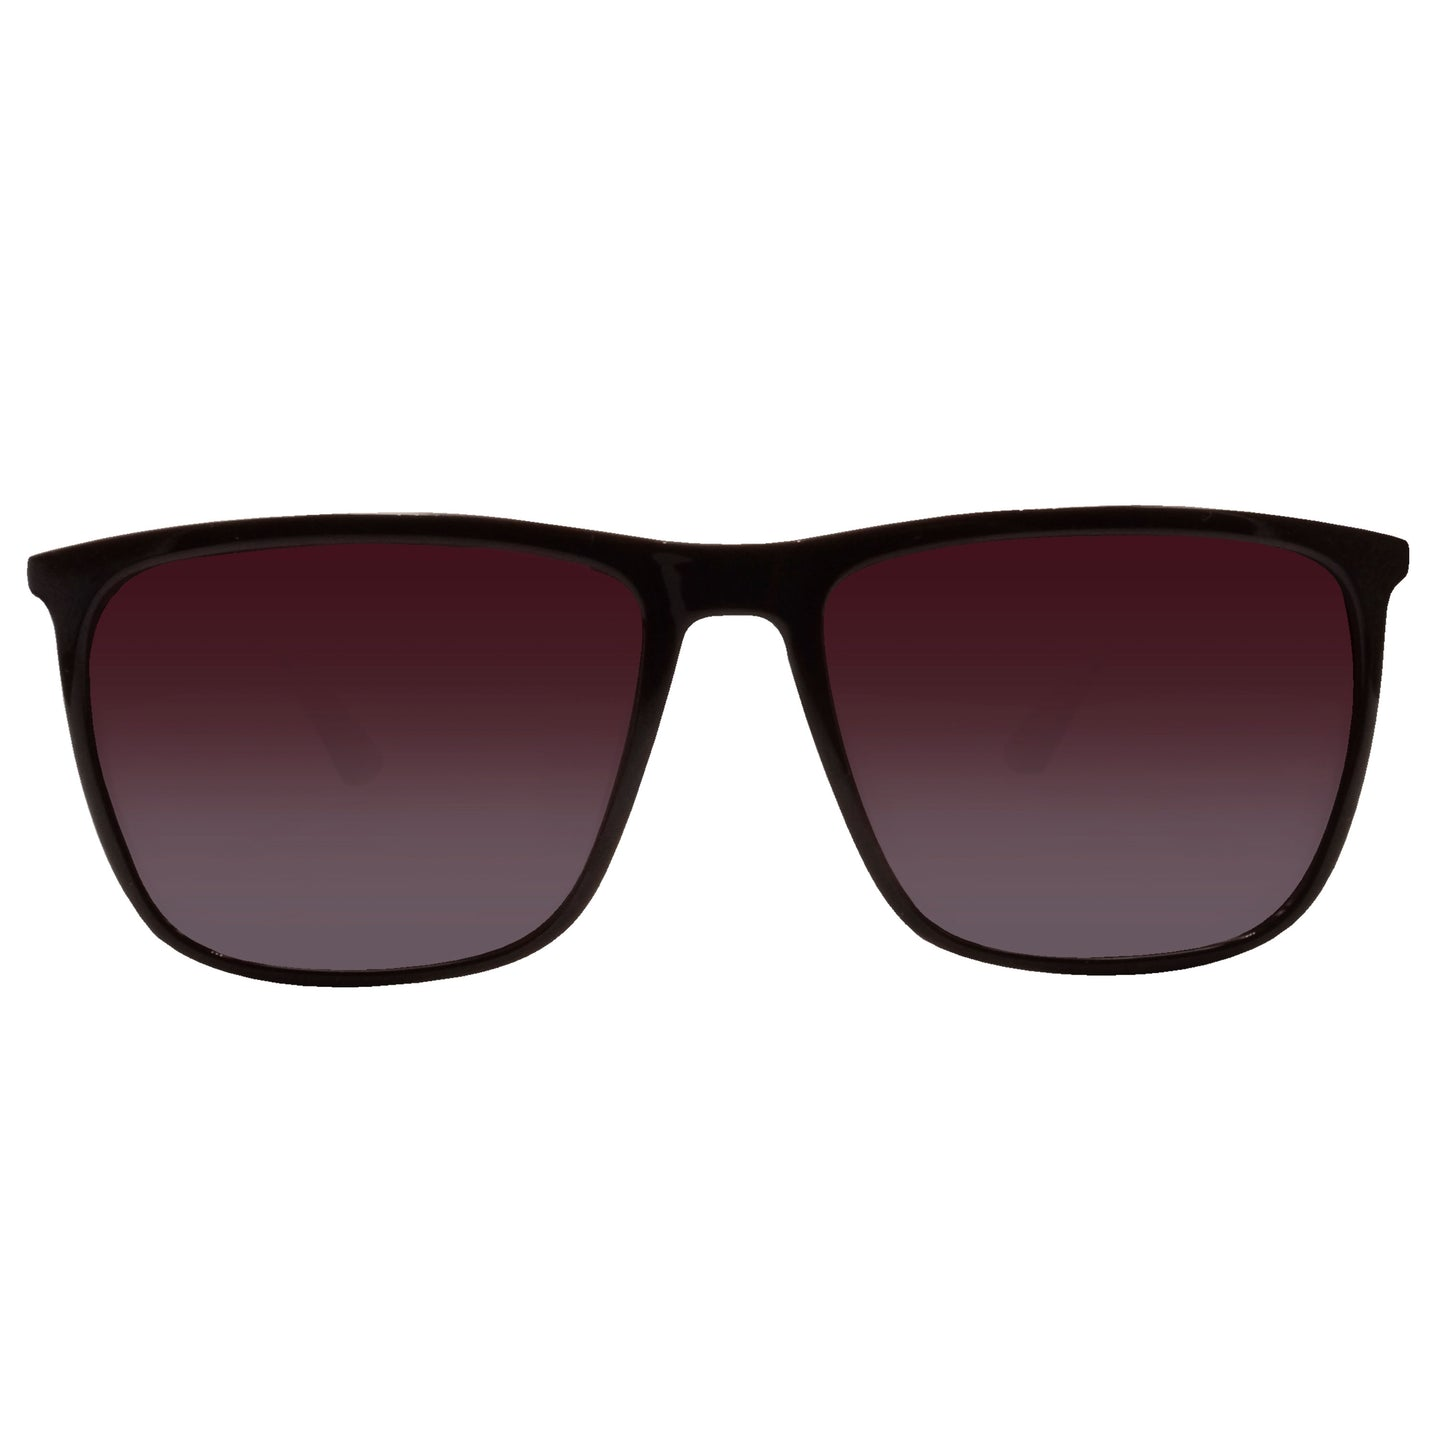 Wysh Sunglasses